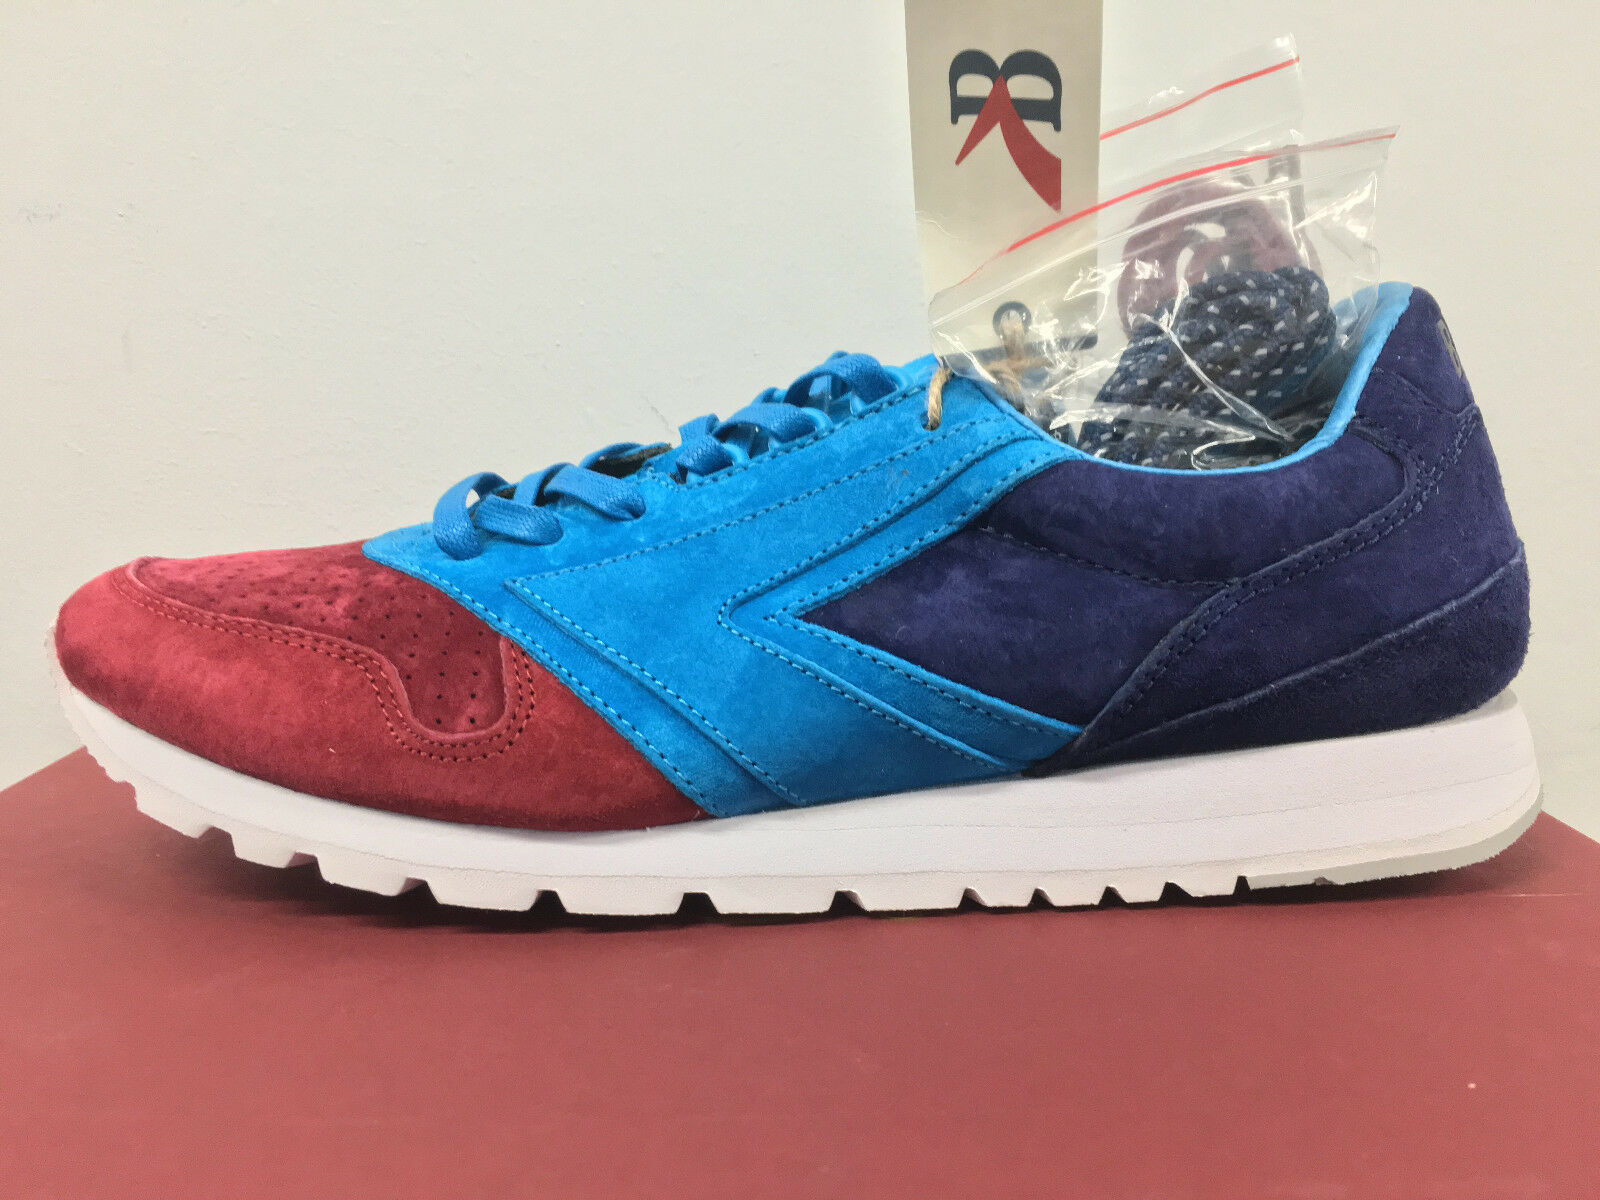 Brooks X Concepts Chariot Navy Rosso 7-13 limited 500 pairs rf 1 ronnie